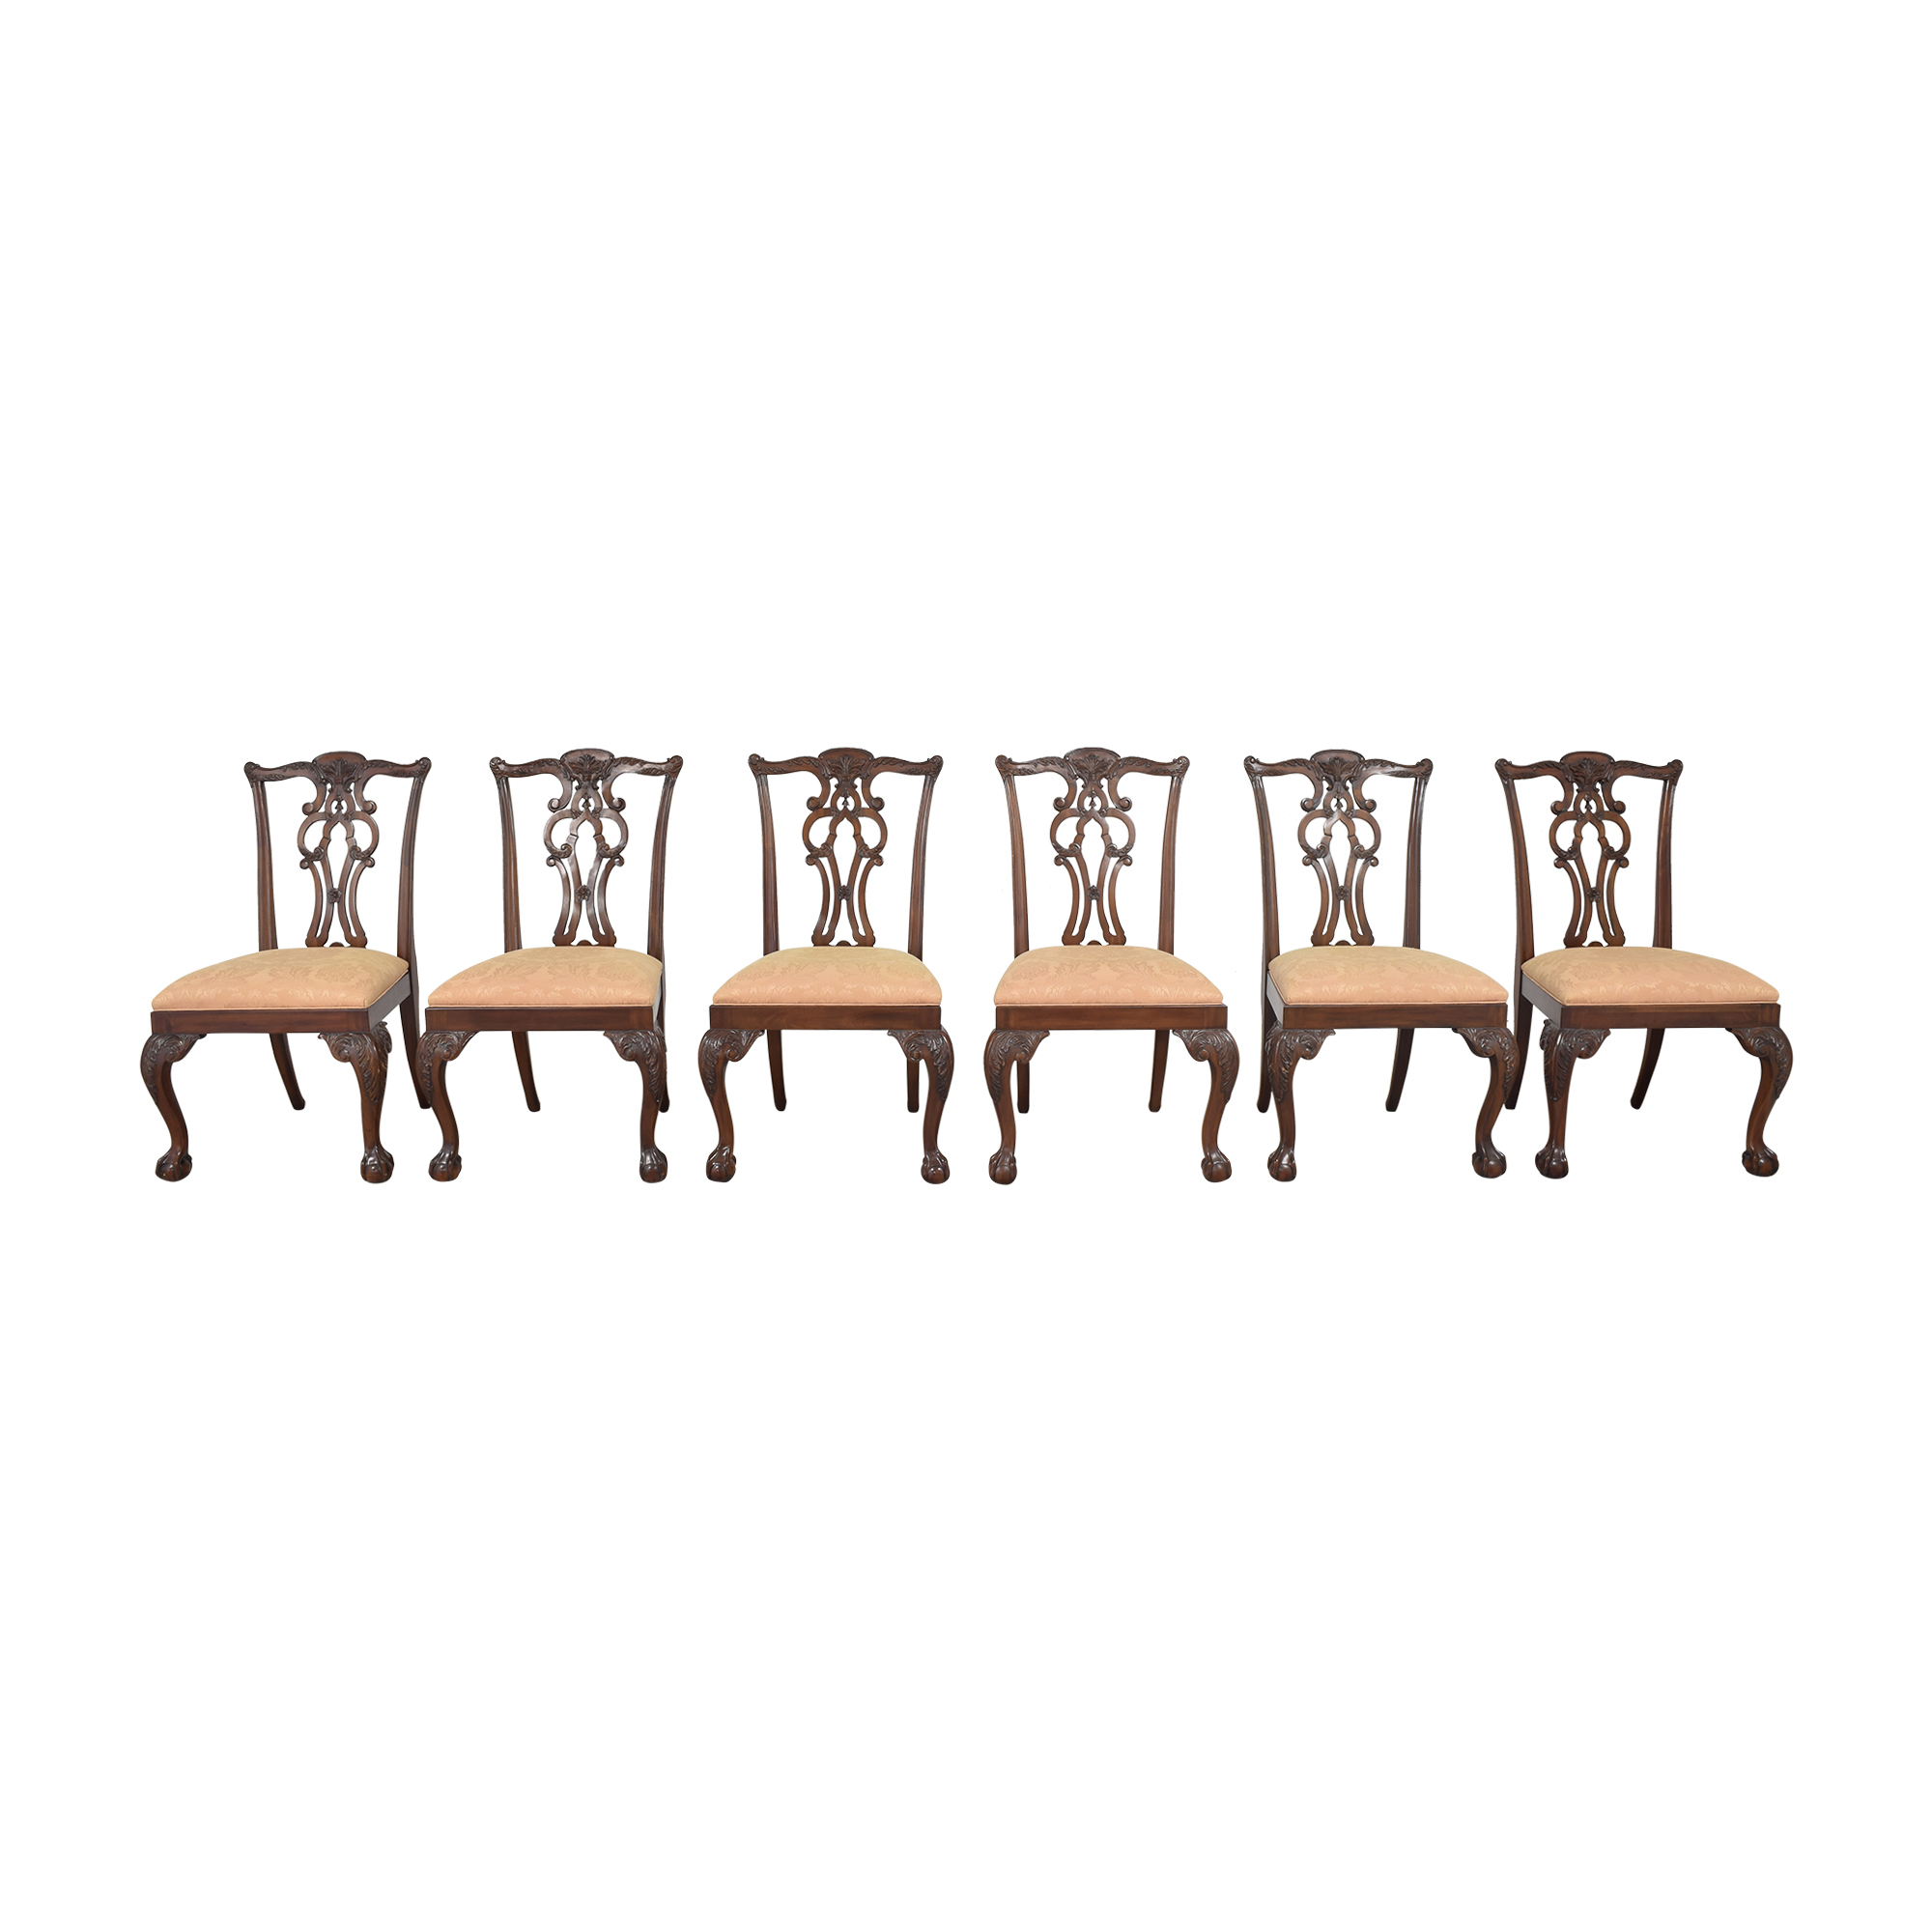 Ethan Allen Ethan Allen Chauncey Dining Side Chairs Chairs